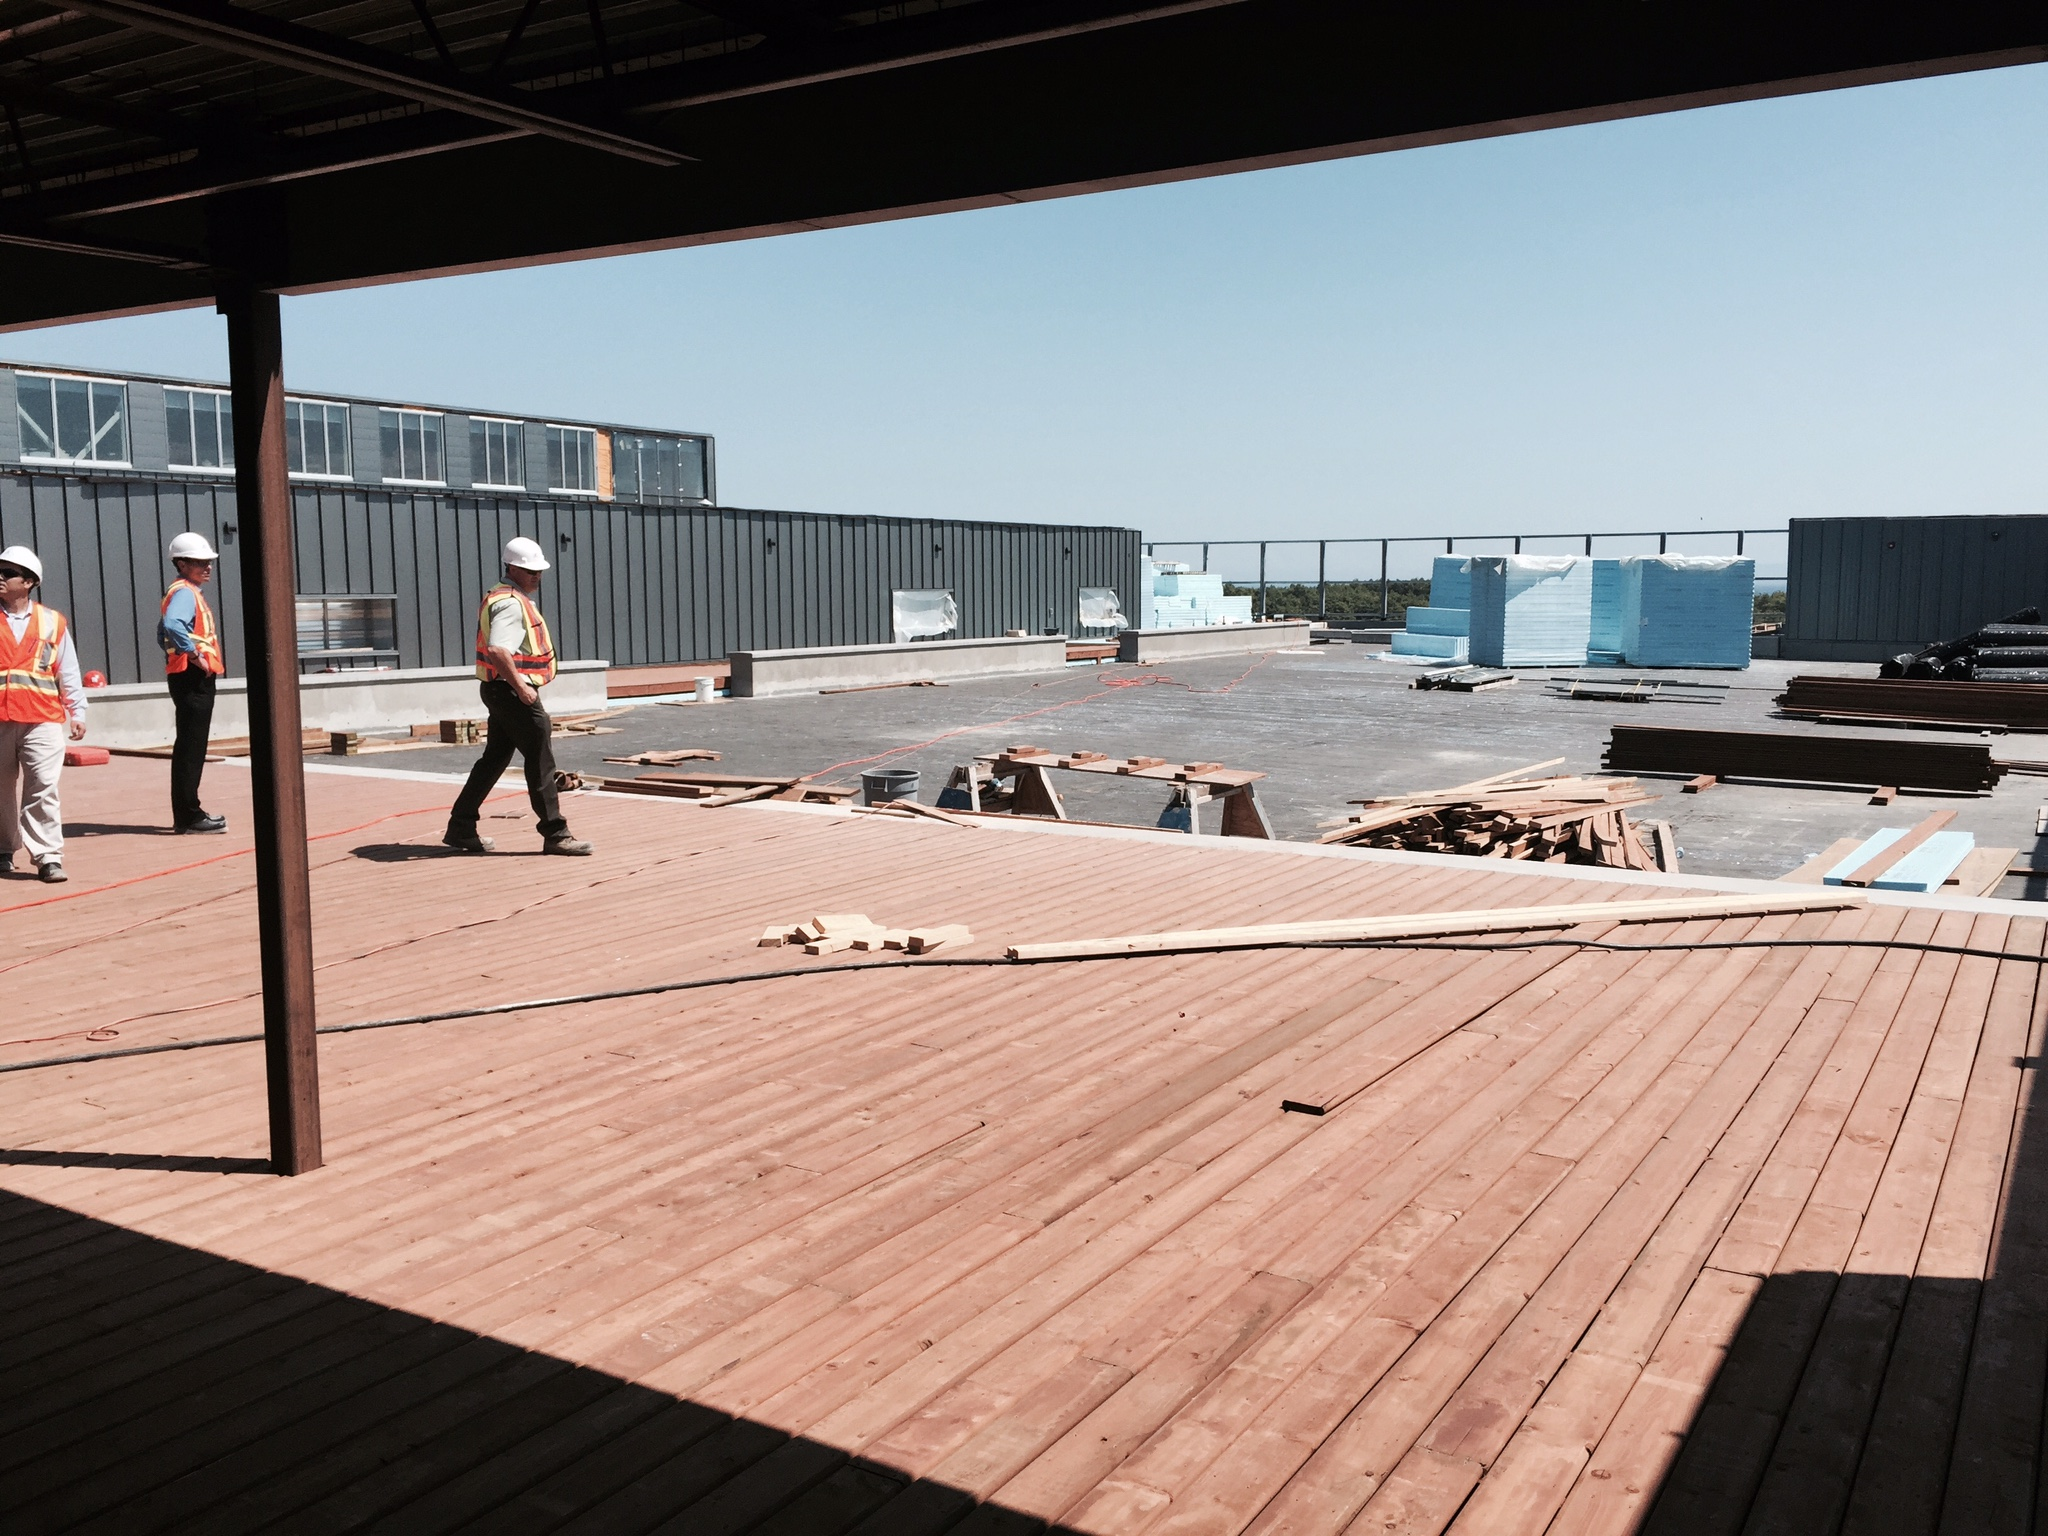 Laying the deck around the rooftop basketball court